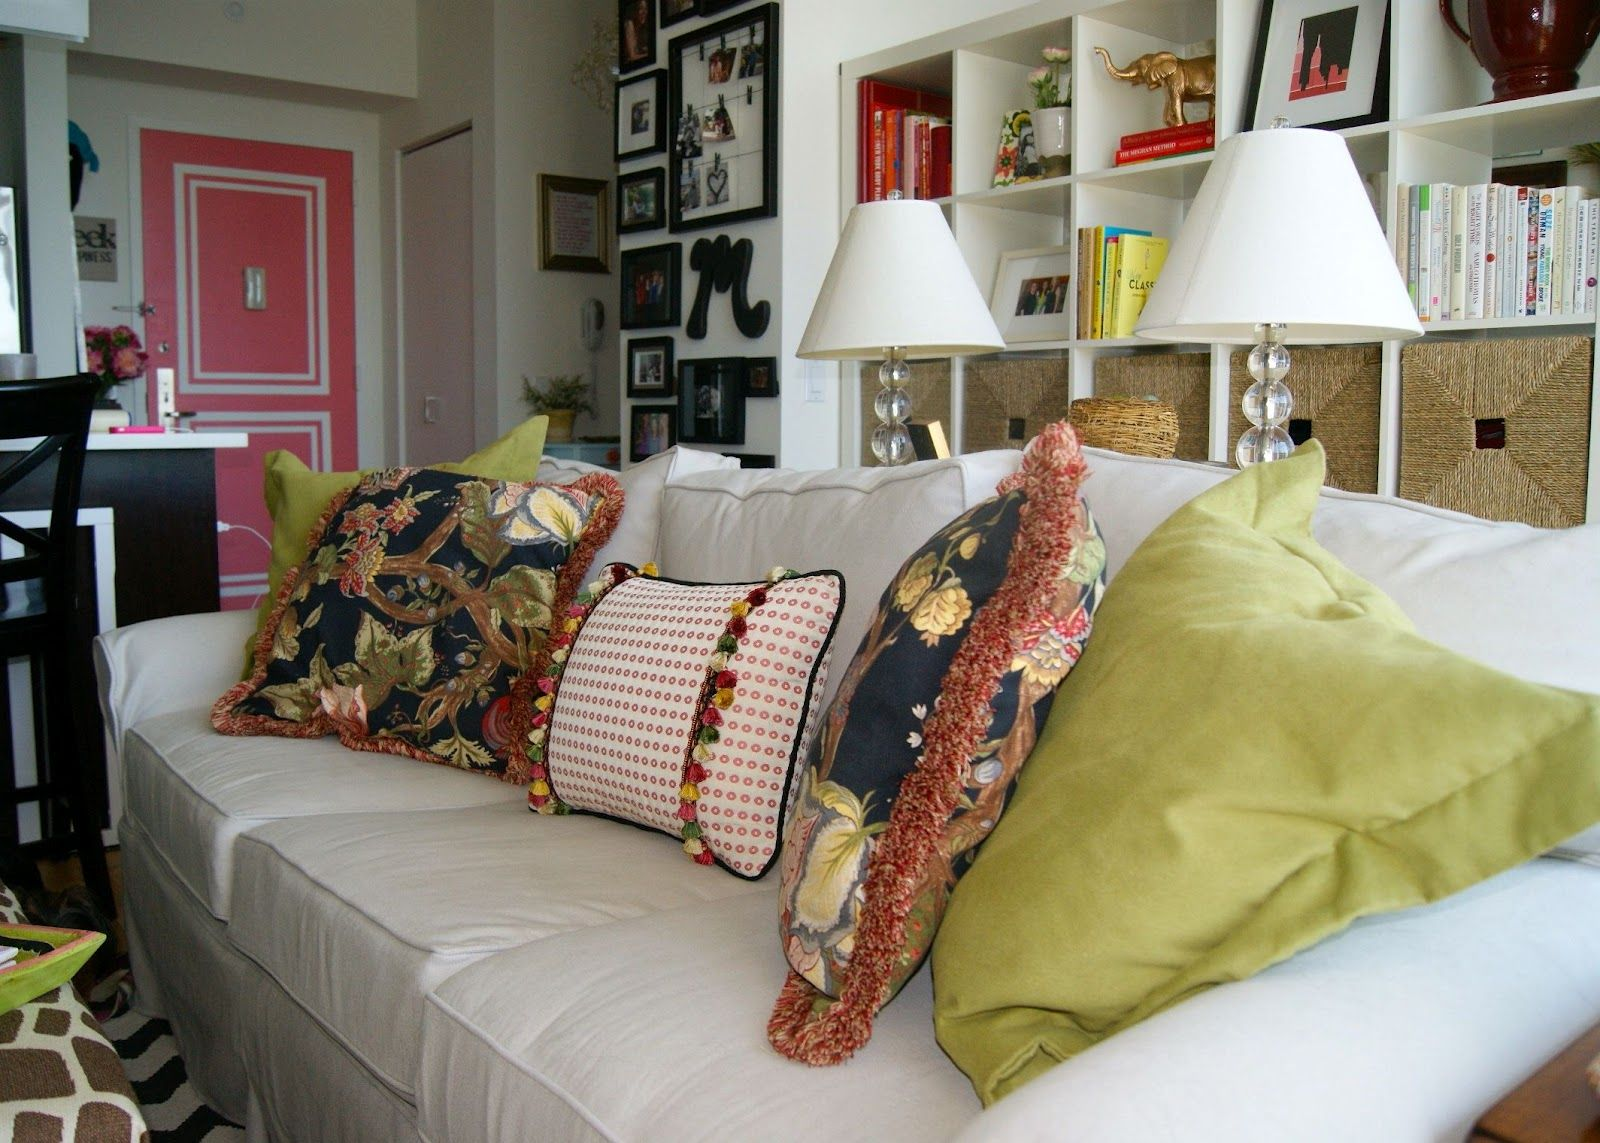 Learning how to divide a room visual home entry u mudrooms